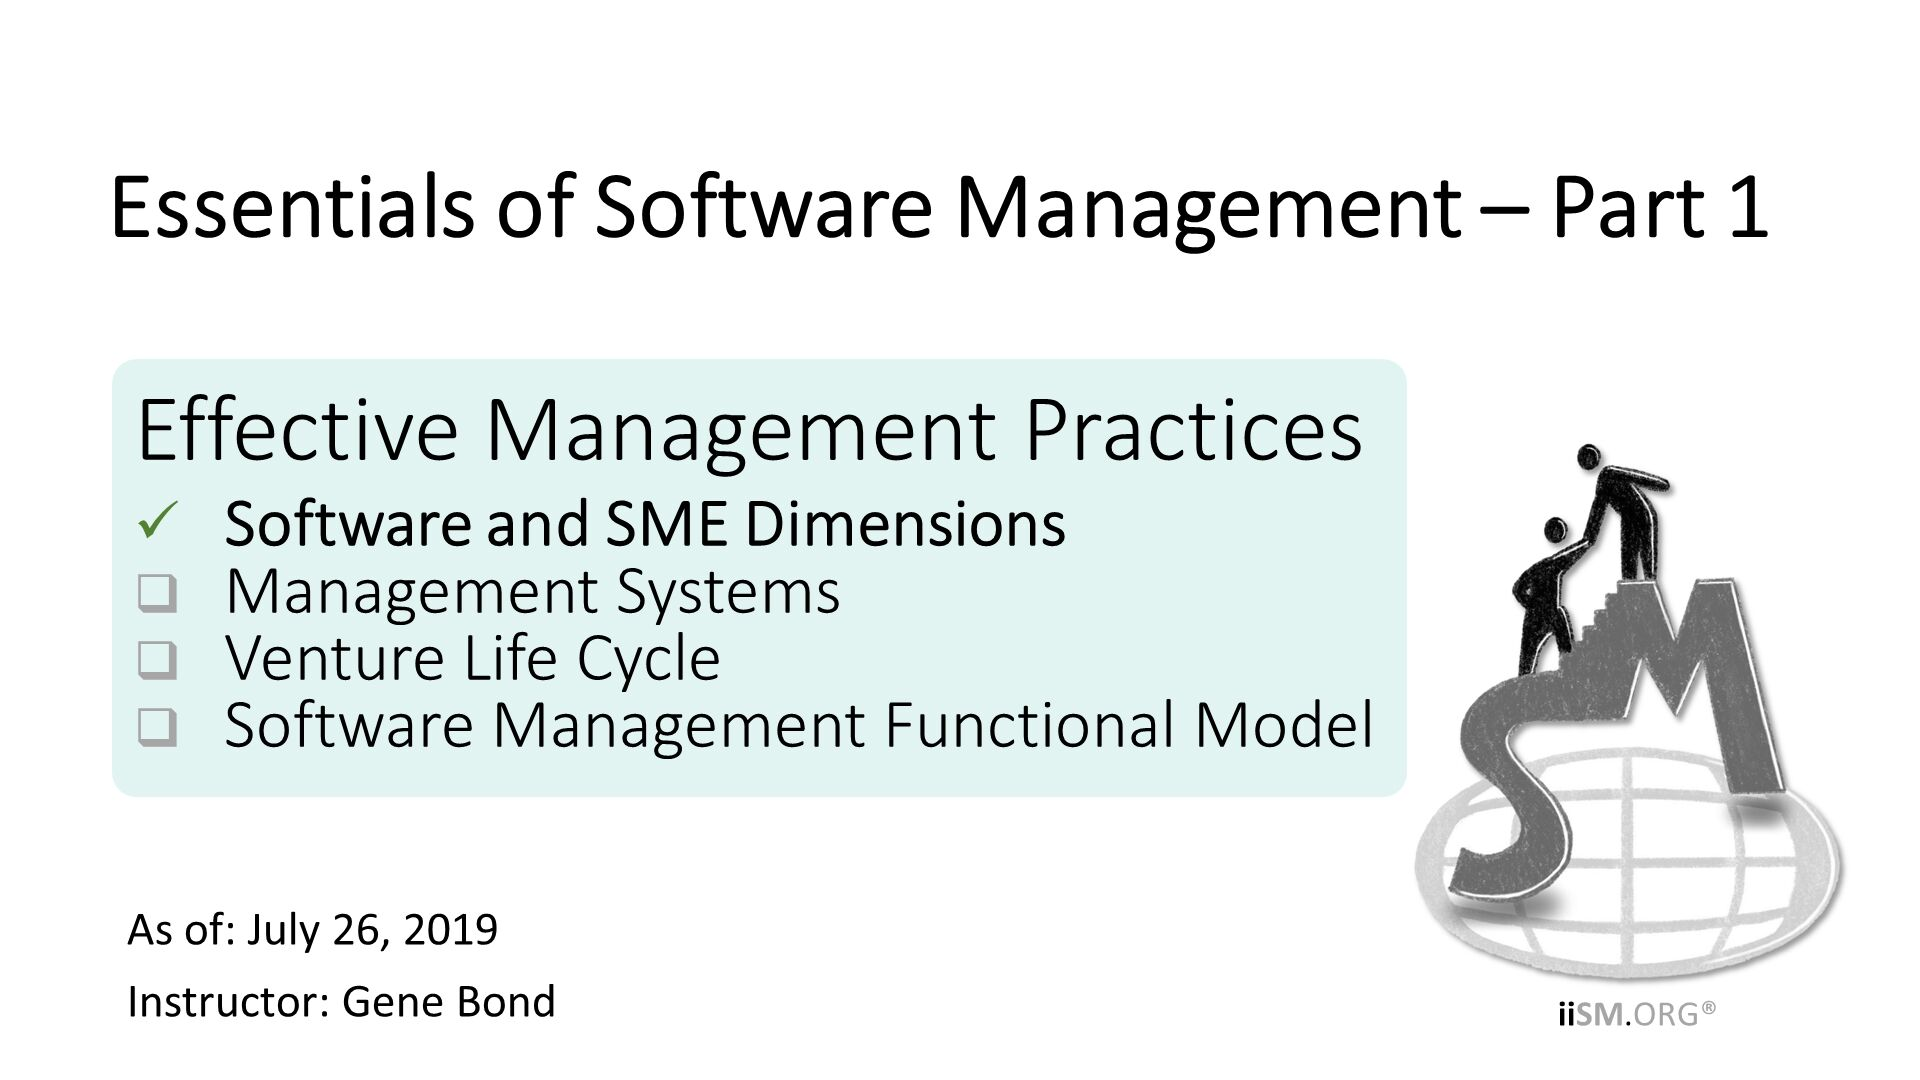 Effective Management Practices Software and SME Dimensions Management Systems Venture Life Cycle Software Management Functional Model. As of: July 26, 2019 Instructor: Gene Bond . Essentials of Software Management – Part 1.